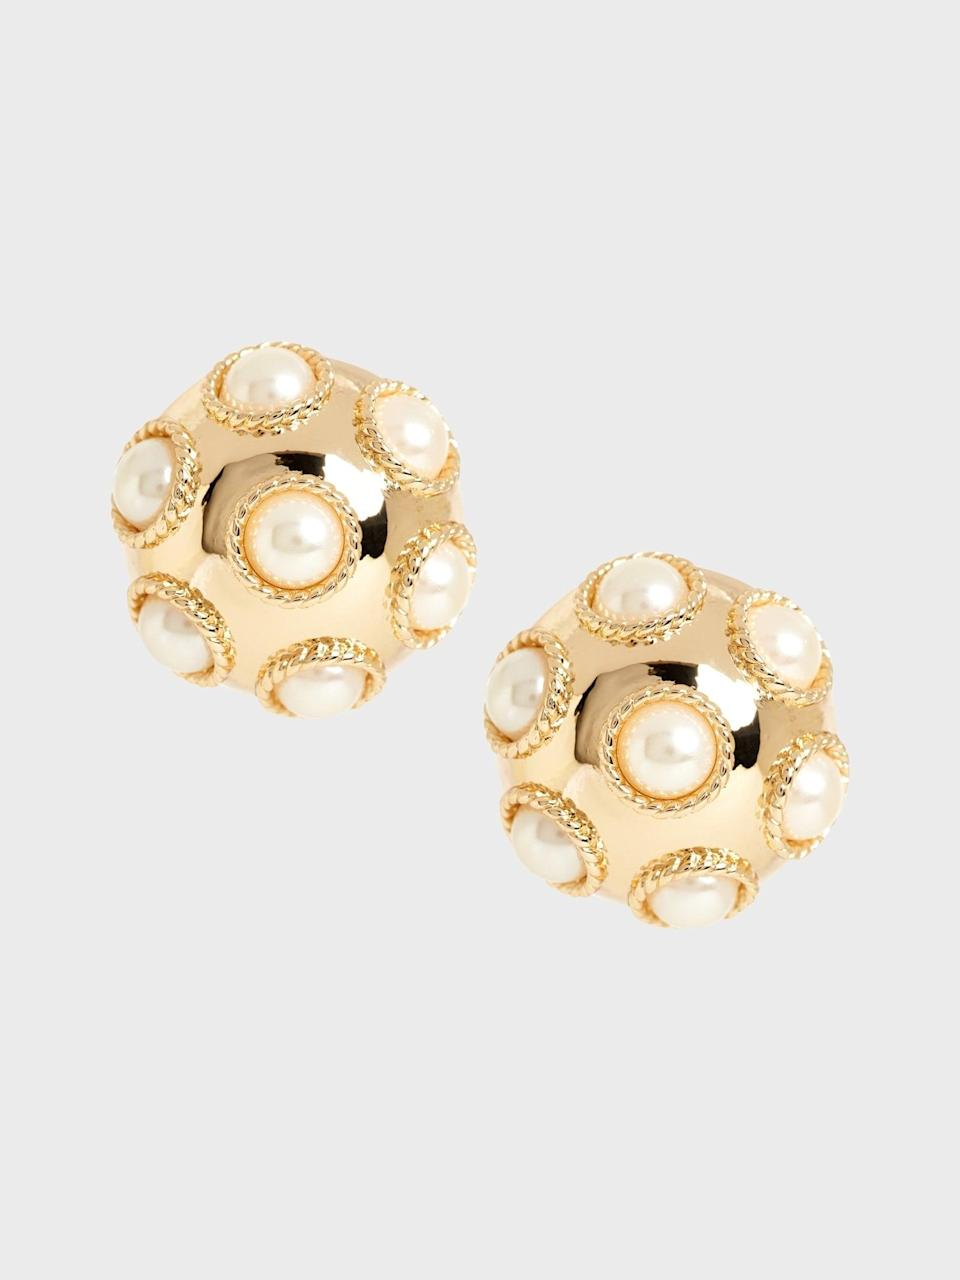 """<p>These <span>Banana Republic Large Studded Pearl Earrings</span> ($58) truly complete the look. VP-elect Harris is known to accessorize with her signature pearls, <a href=""""https://www.popsugar.com/fashion/kamala-harris-pearl-necklace-style-47792392"""" class=""""link rapid-noclick-resp"""" rel=""""nofollow noopener"""" target=""""_blank"""" data-ylk=""""slk:a look she's been rocking since her days at Howard University"""">a look she's been rocking since her days at Howard University</a>!</p>"""